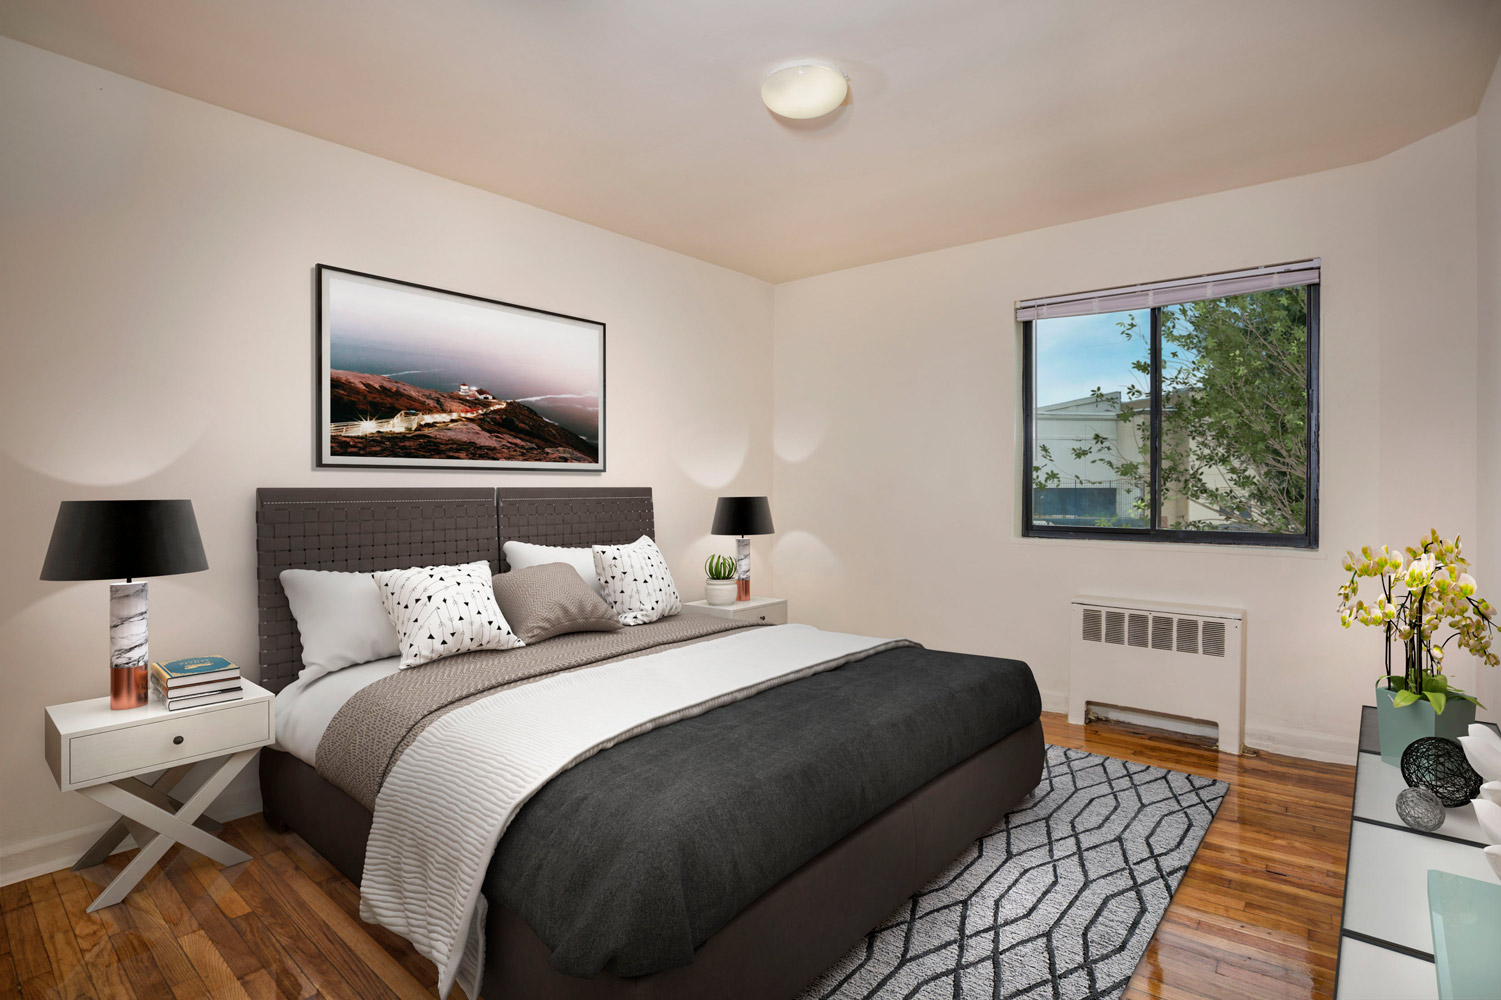 Cozy bedroom at Liberty Place Apartments in Langley Park, MD